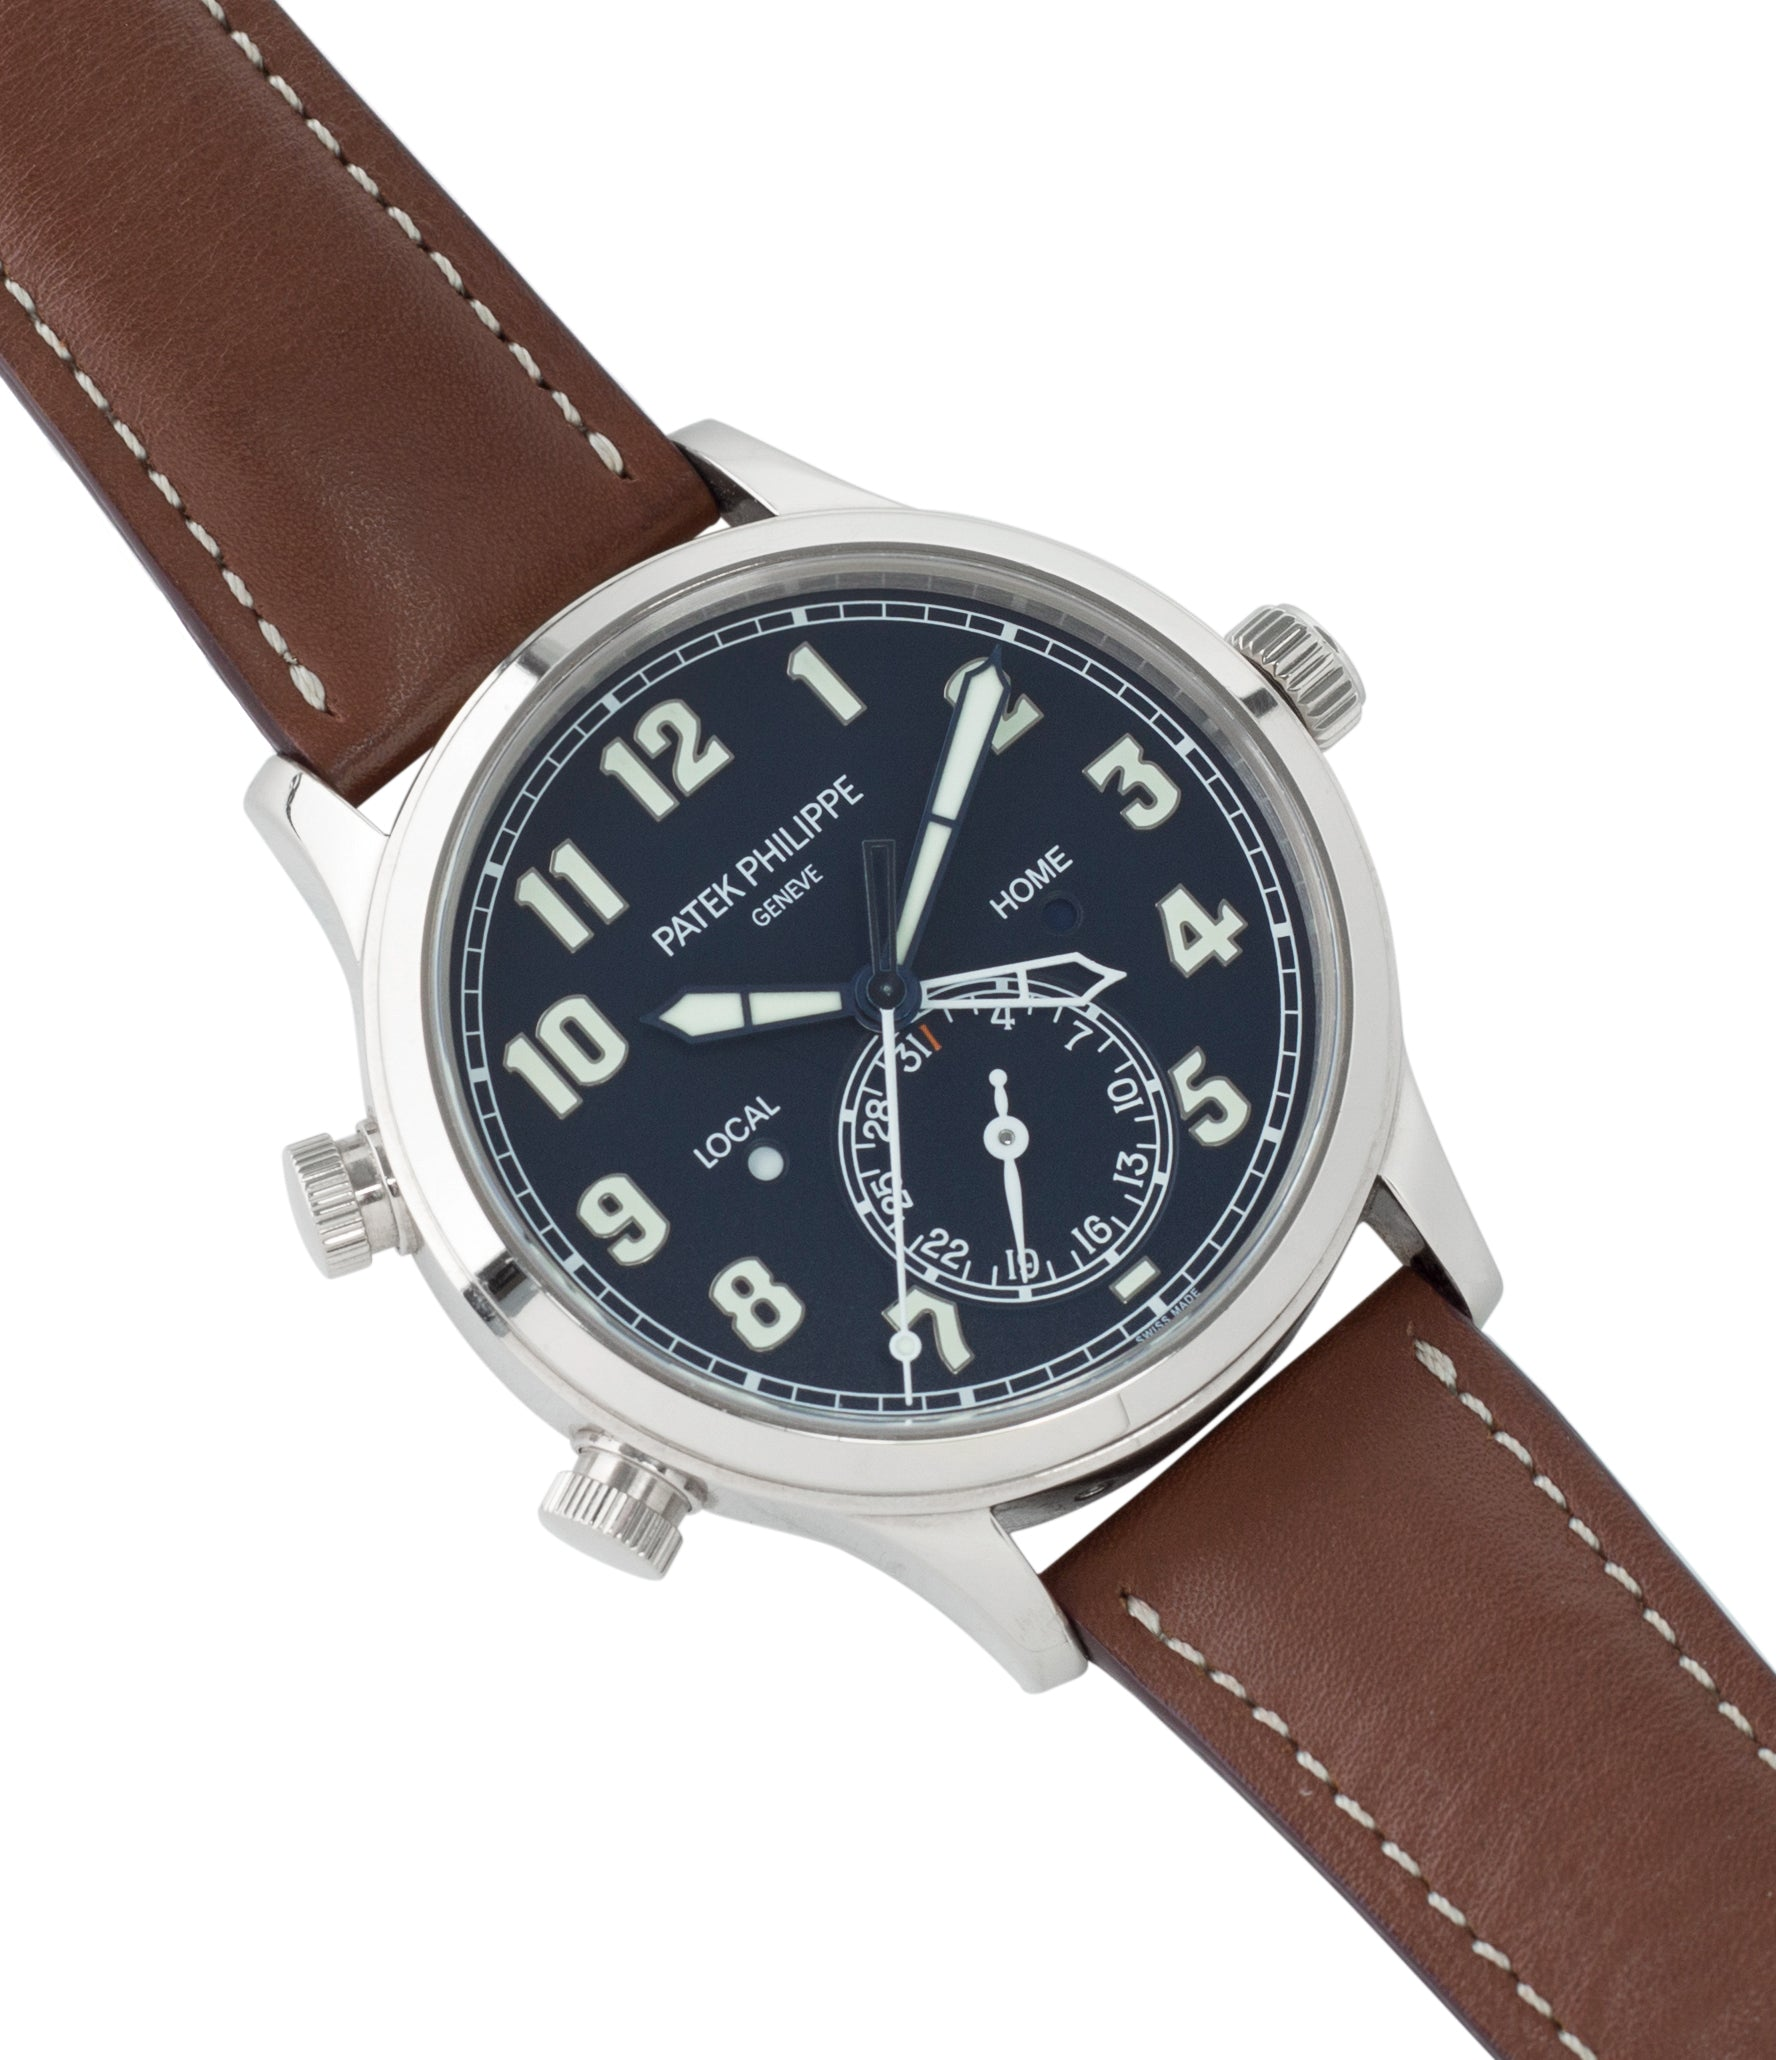 selling Patek Philippe 5524G-001 pilot travel-time white gold watch online at A Collected Man London specialist retailer of rare watches